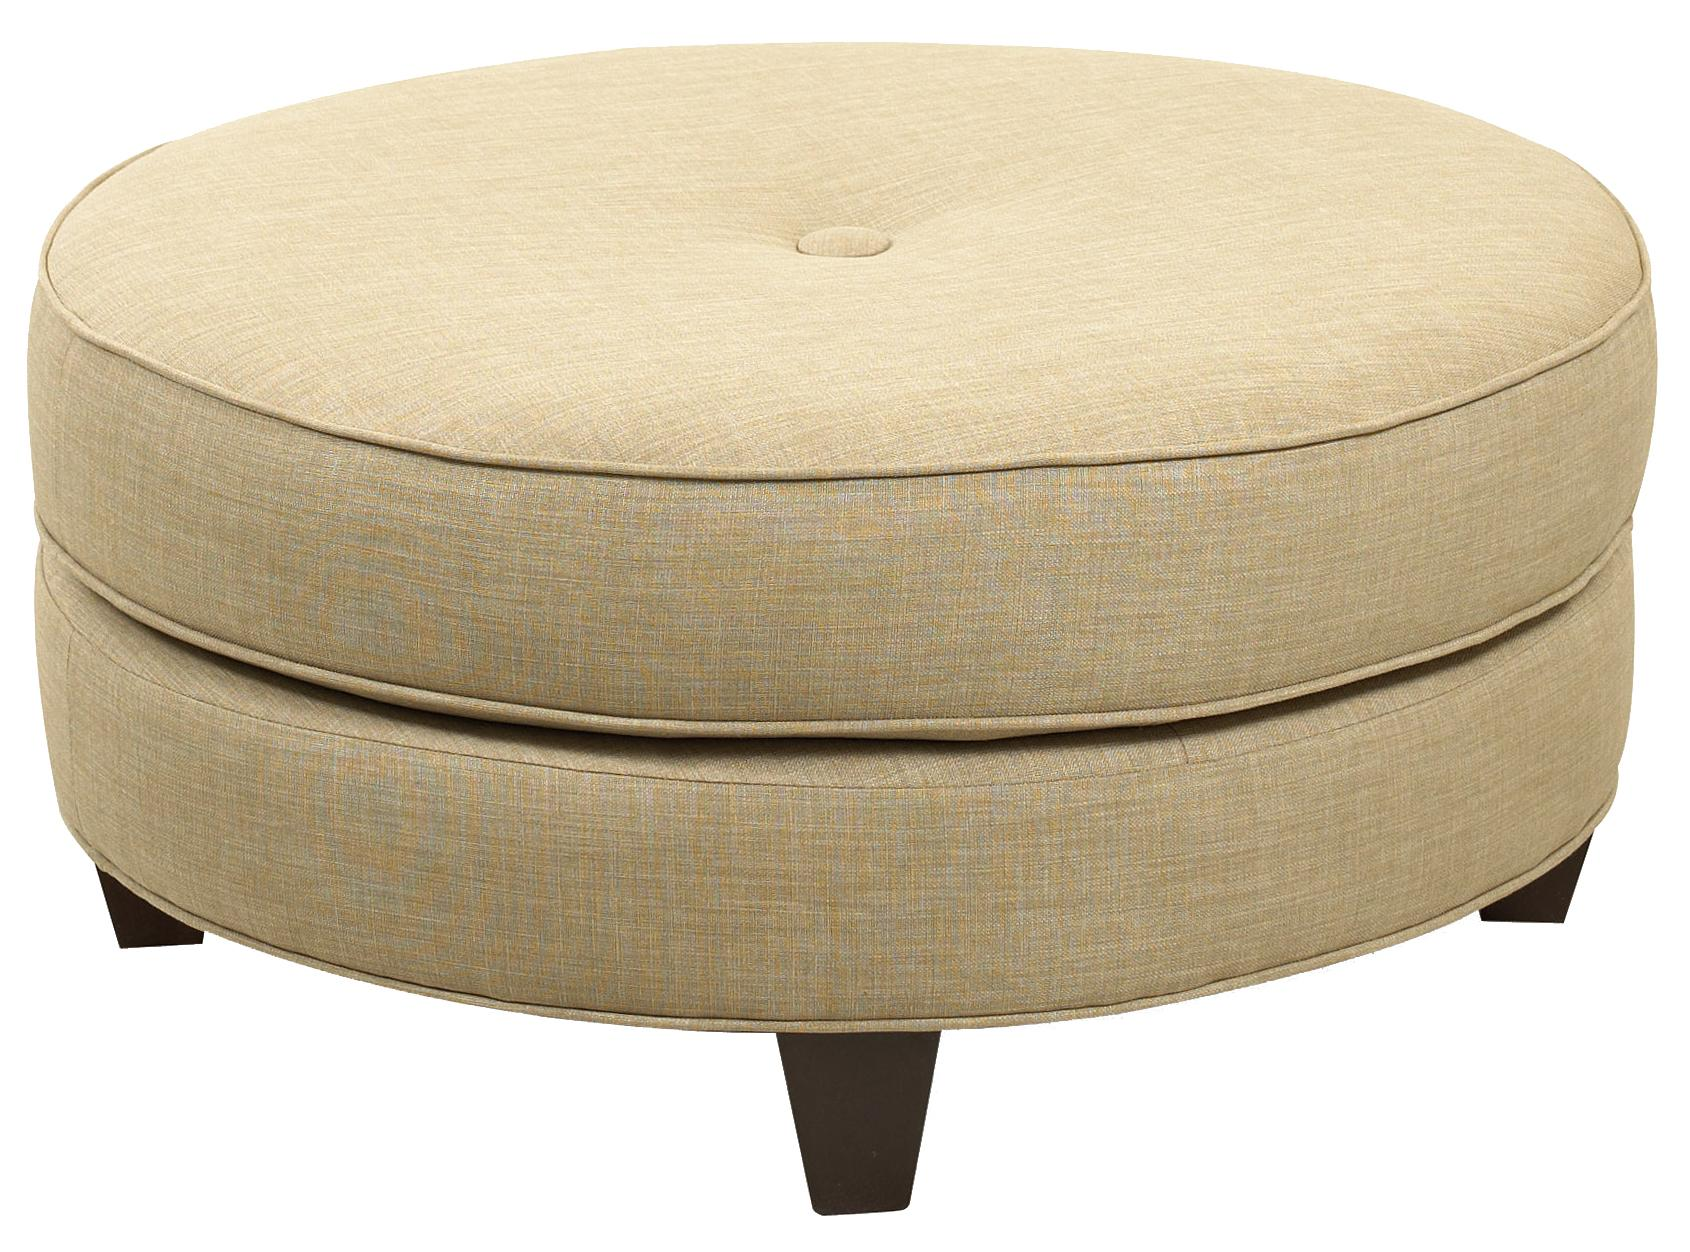 Incroyable Klaussner Chairs And Accents Pippa Ottoman   Item Number: K21500 OTTO